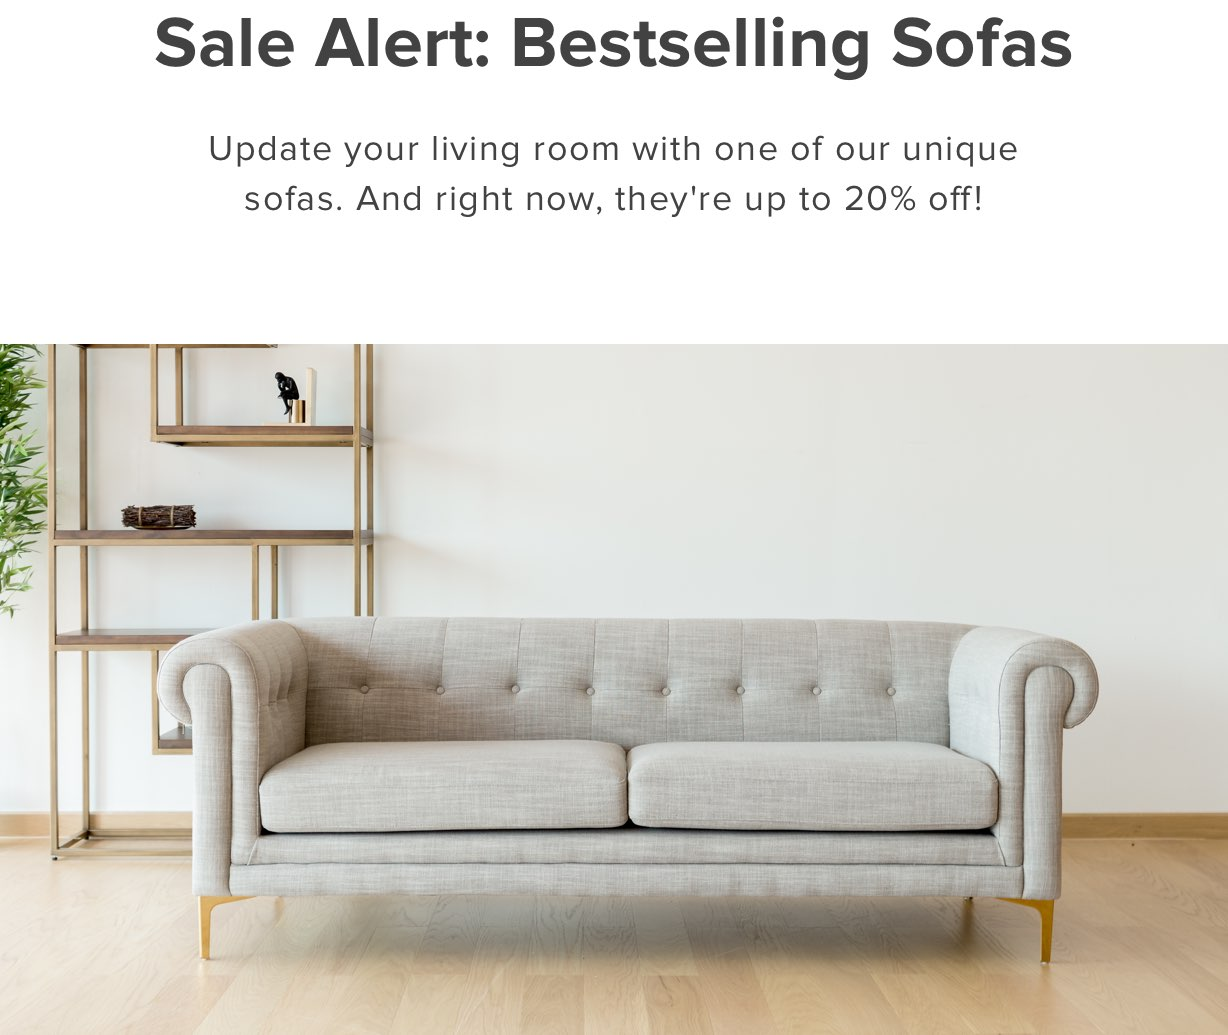 Castlery: Bestselling Sofas On Sale! | Milled